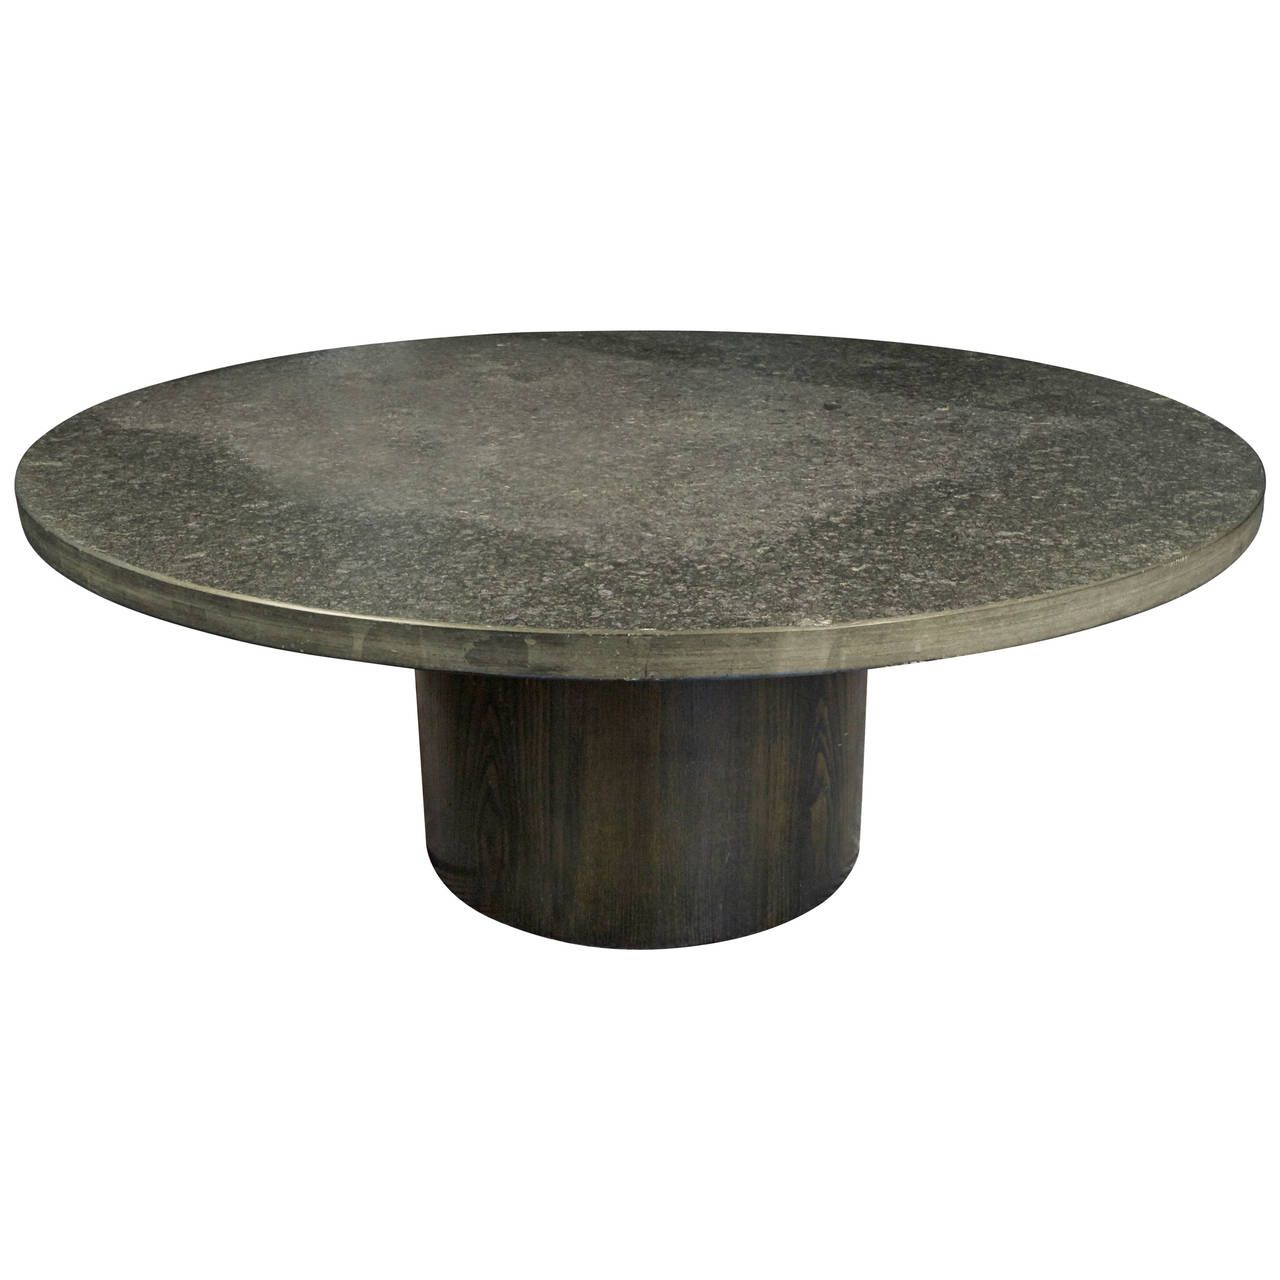 1970s Grey Slate Stone Coffee Table By Draenert Studios From A Unique Collection Of Antique And Modern Coffee And Stone Coffee Table Slate Stone Coffee Table